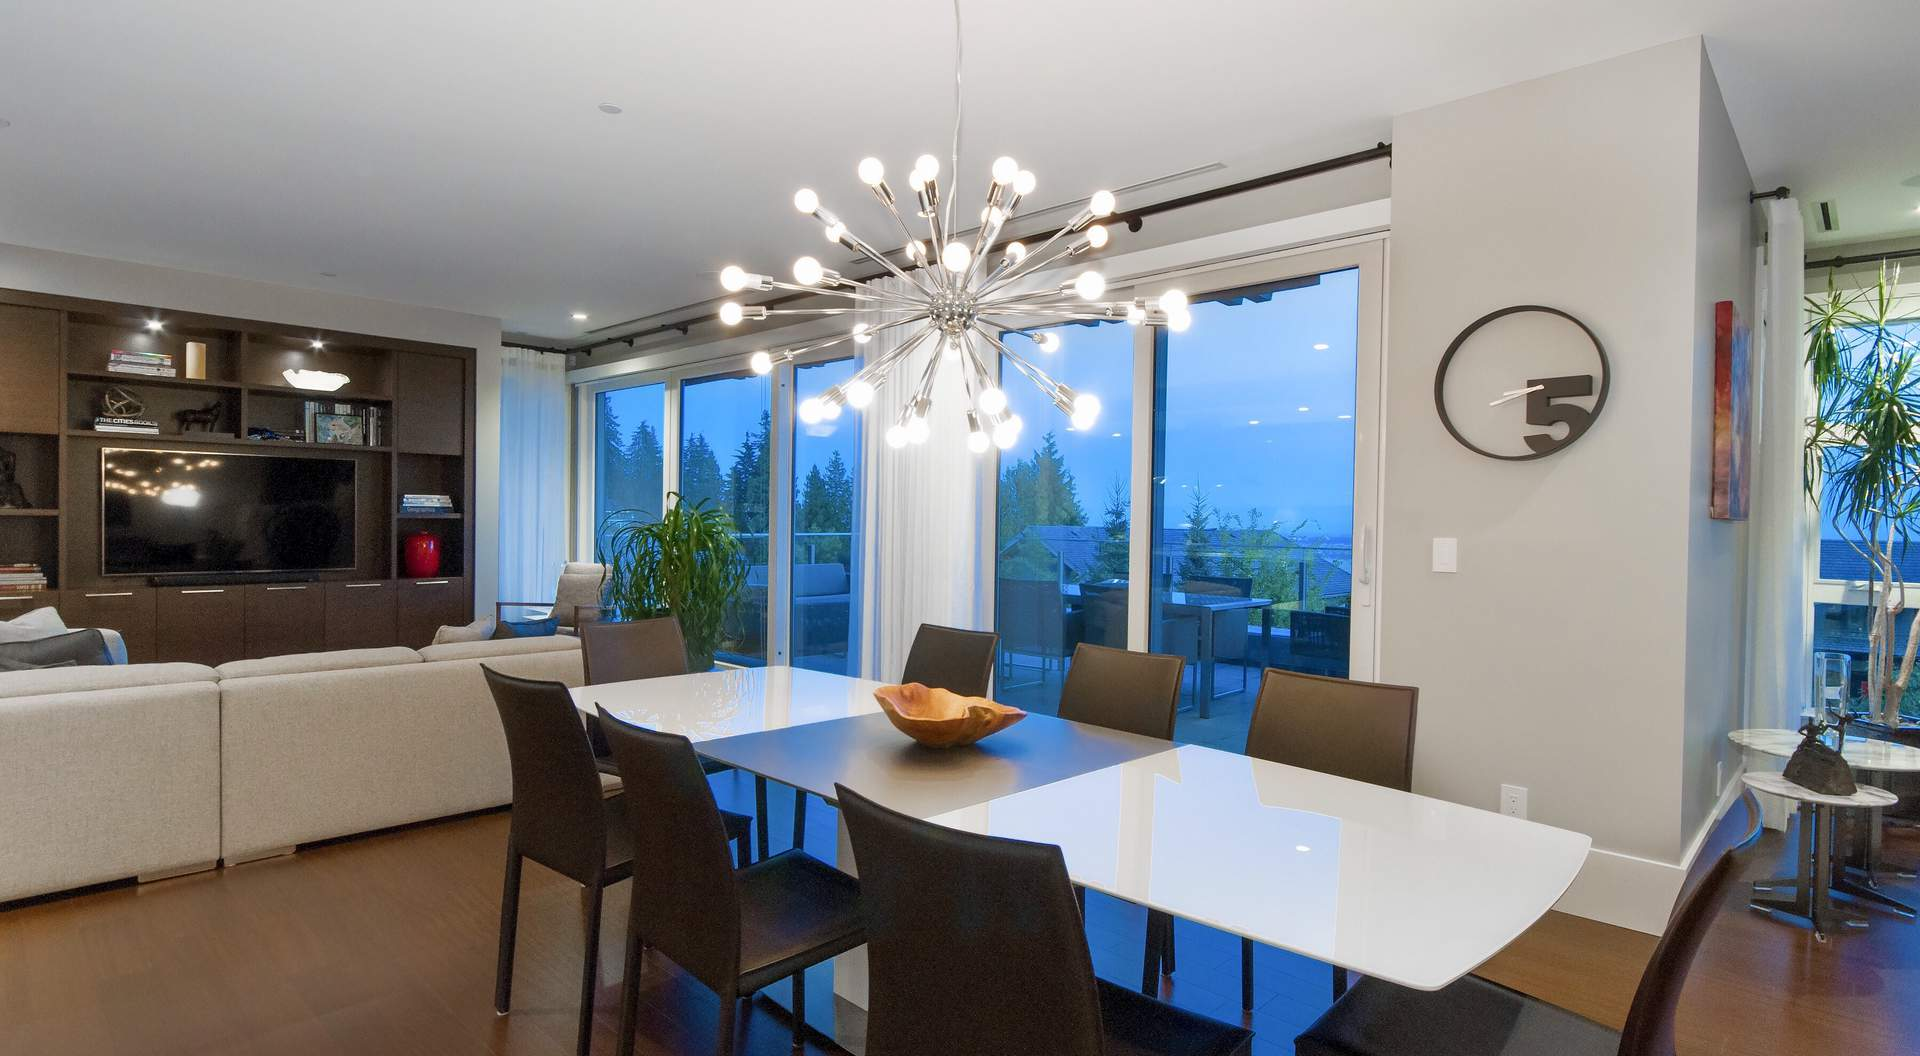 Modern open floor plan, modern chandelier, glass walls, gray walls, white kitchen table